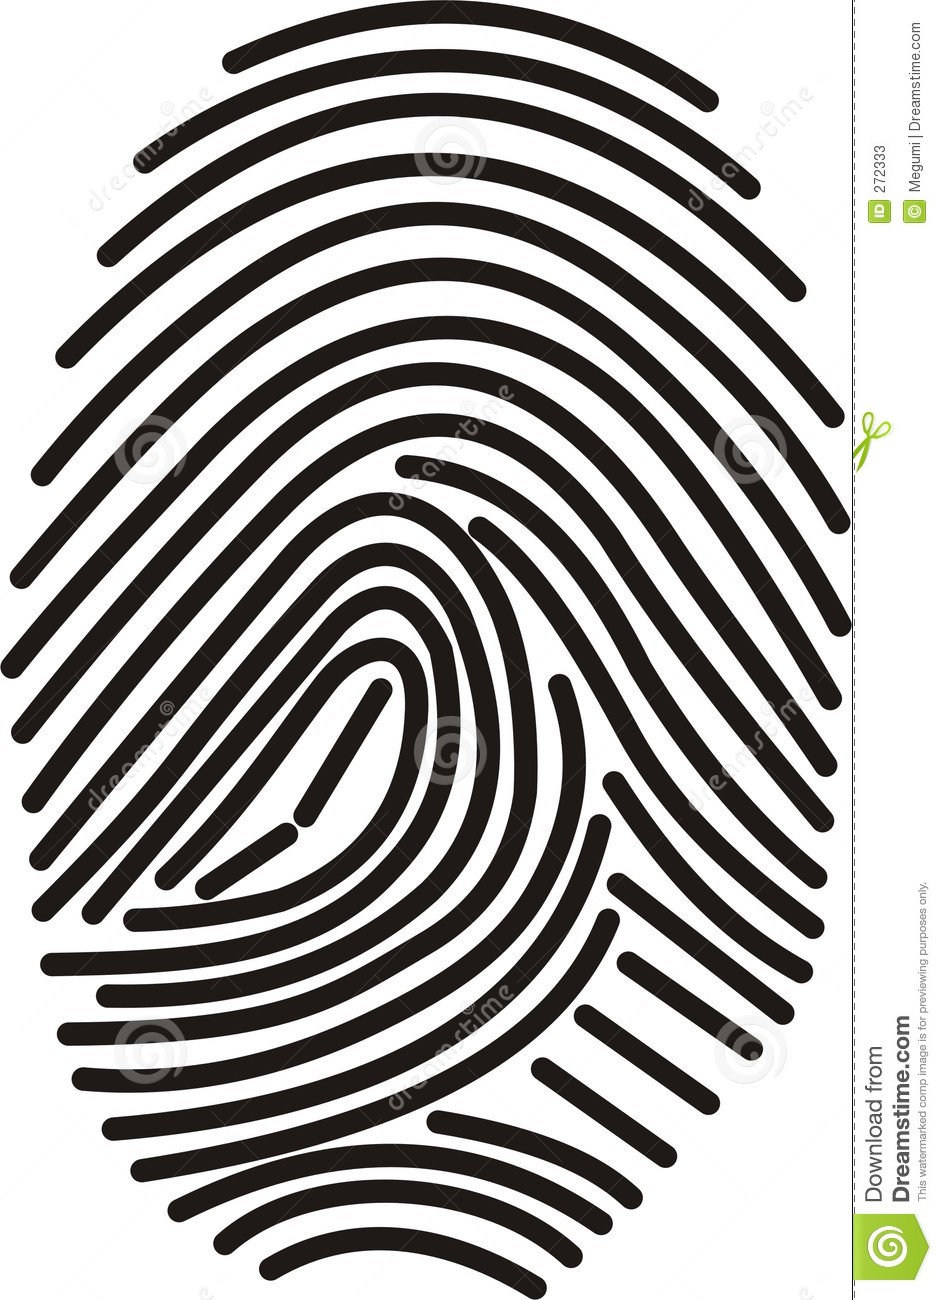 Finger Print clipart #6, Download drawings